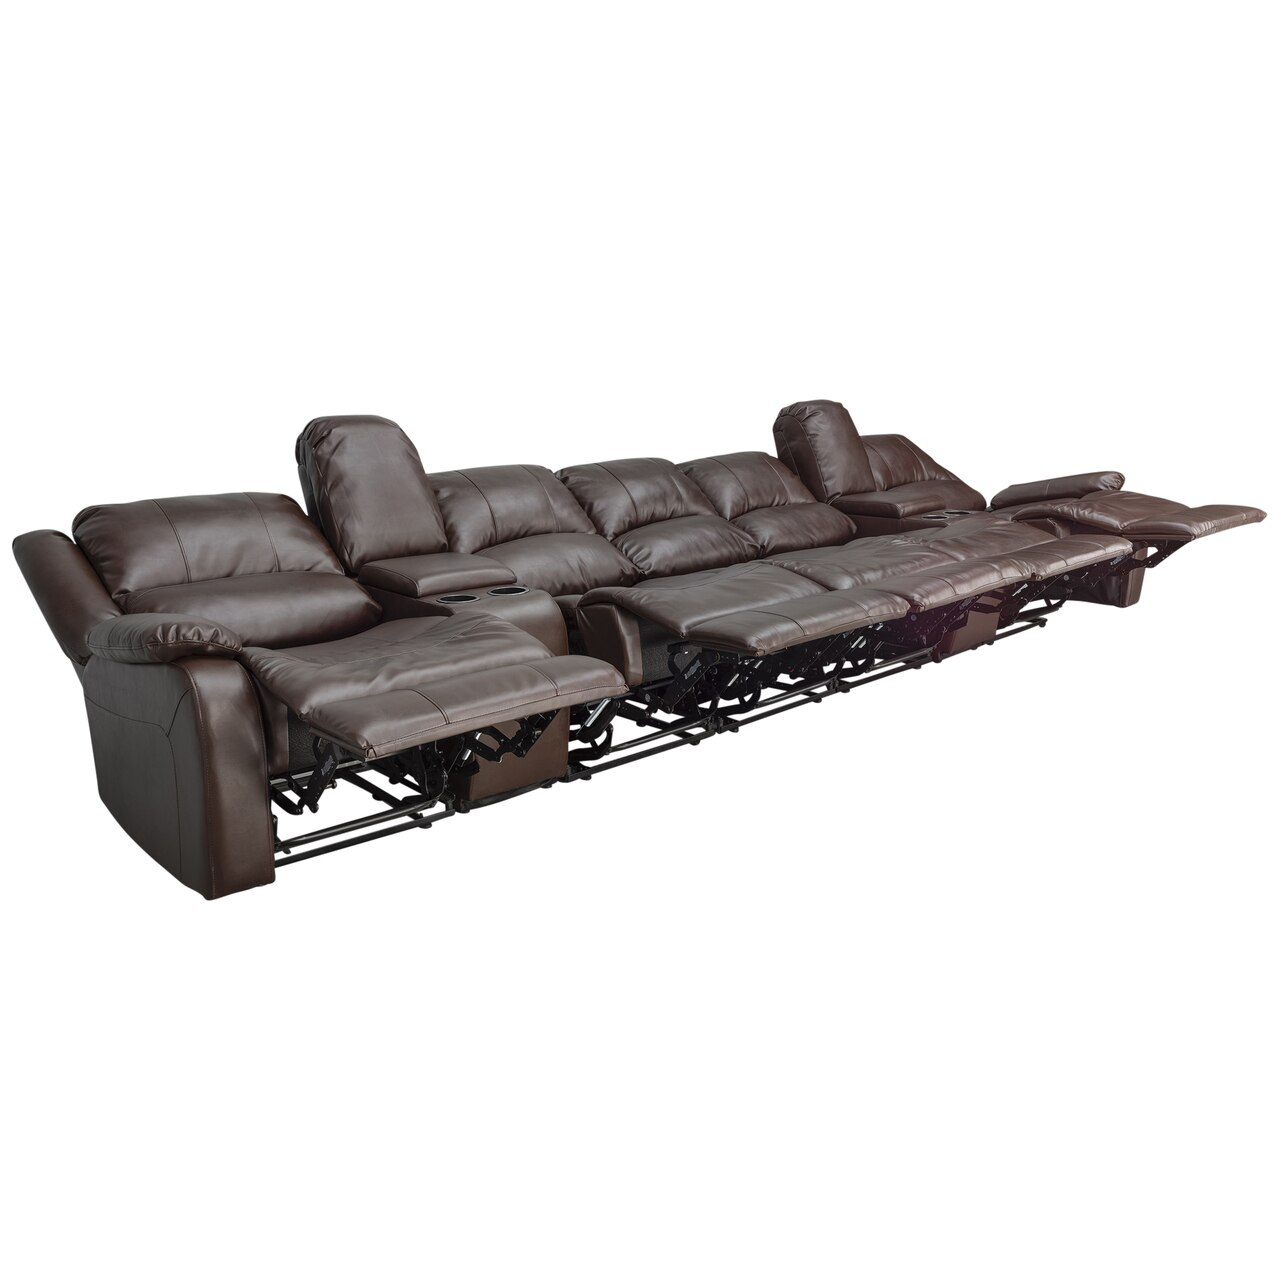 Furnitures Recpro Charles 148 Quot Wall Hugger Rv Recliner